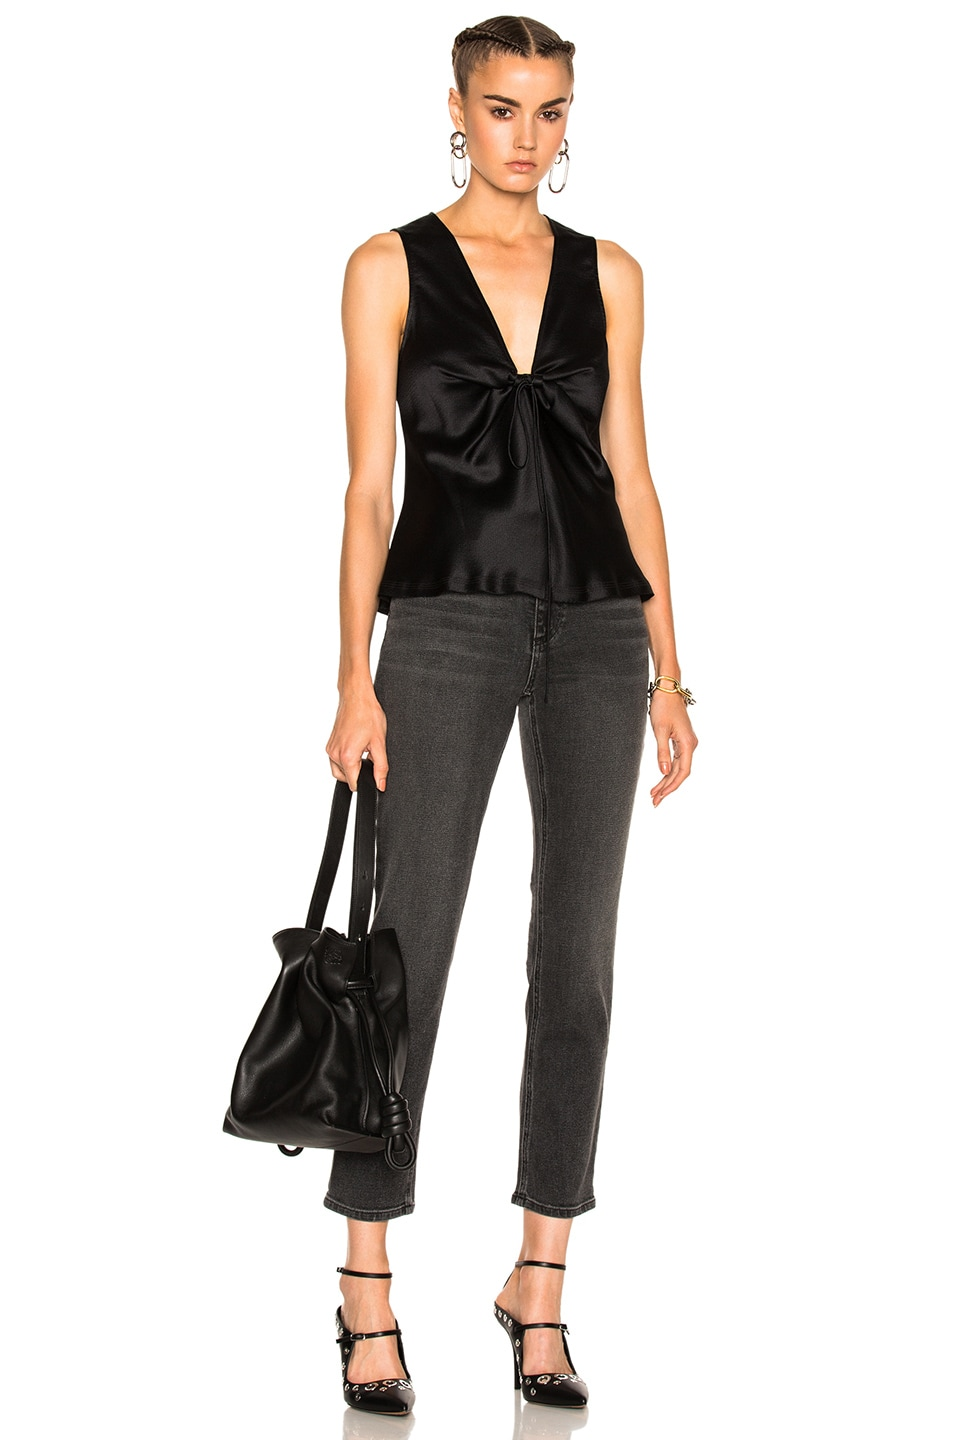 Image 5 of T by Alexander Wang Silk Charmeuse Tie Knot Sleeveless Top in Black